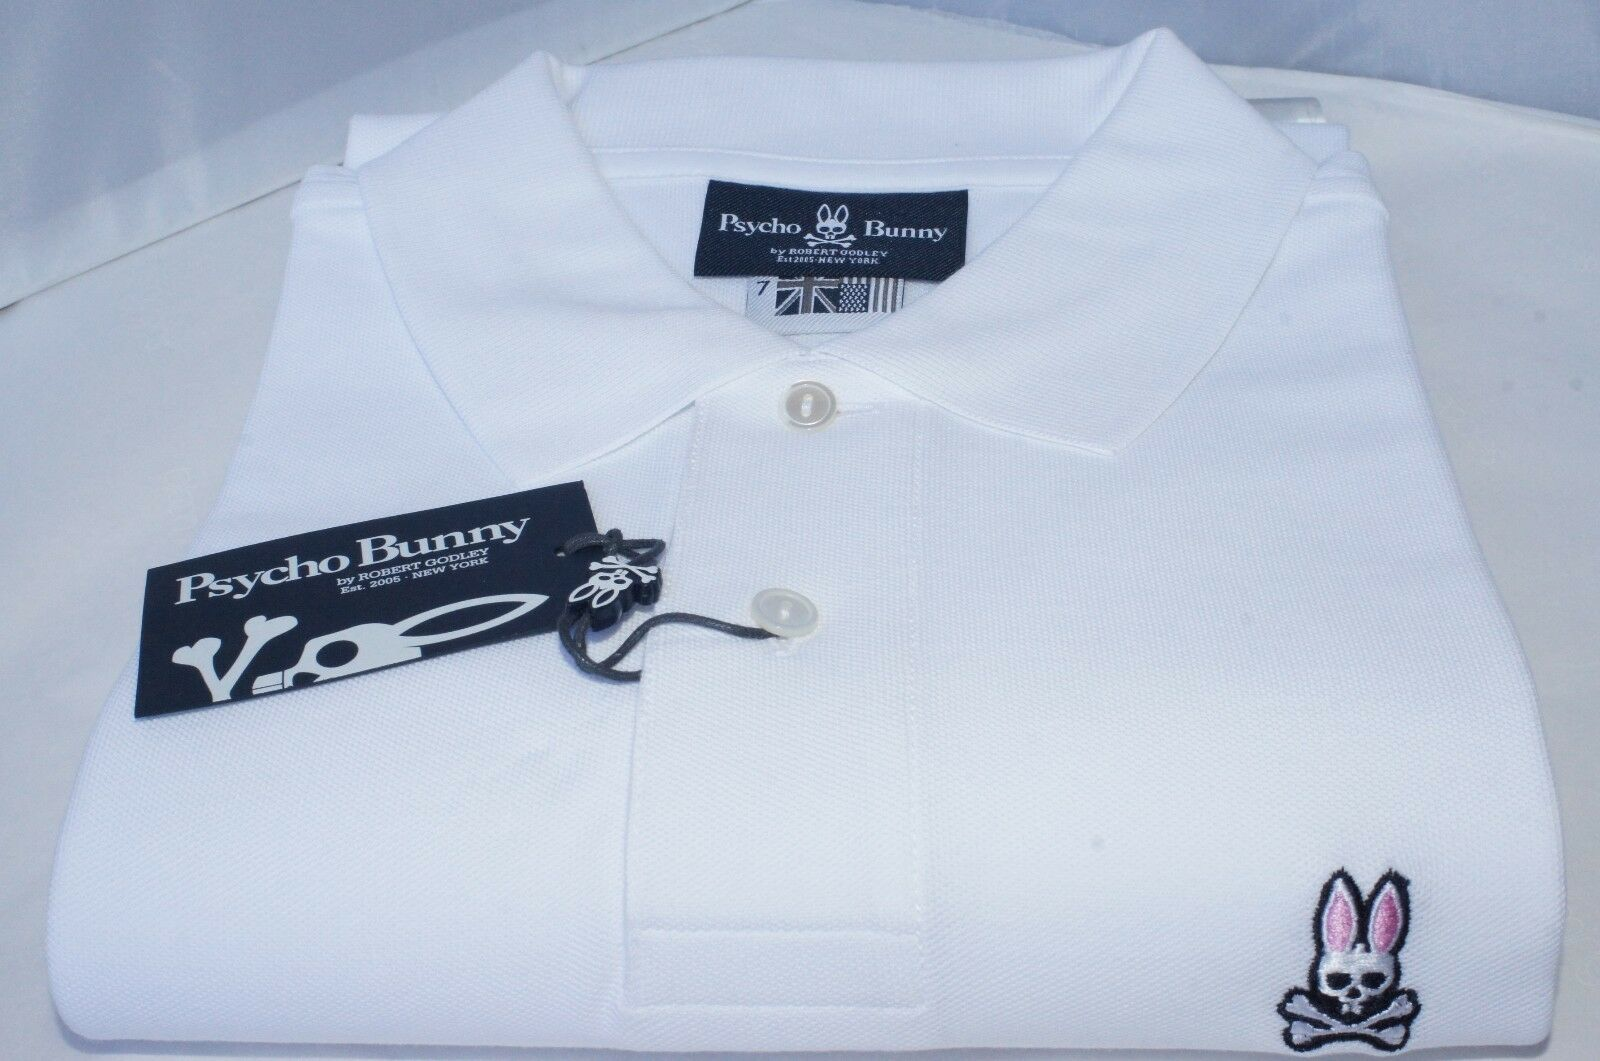 New Psycho Bunny Short Sleeve Classic Polo Shirt Size L White Cotton Sale Gift